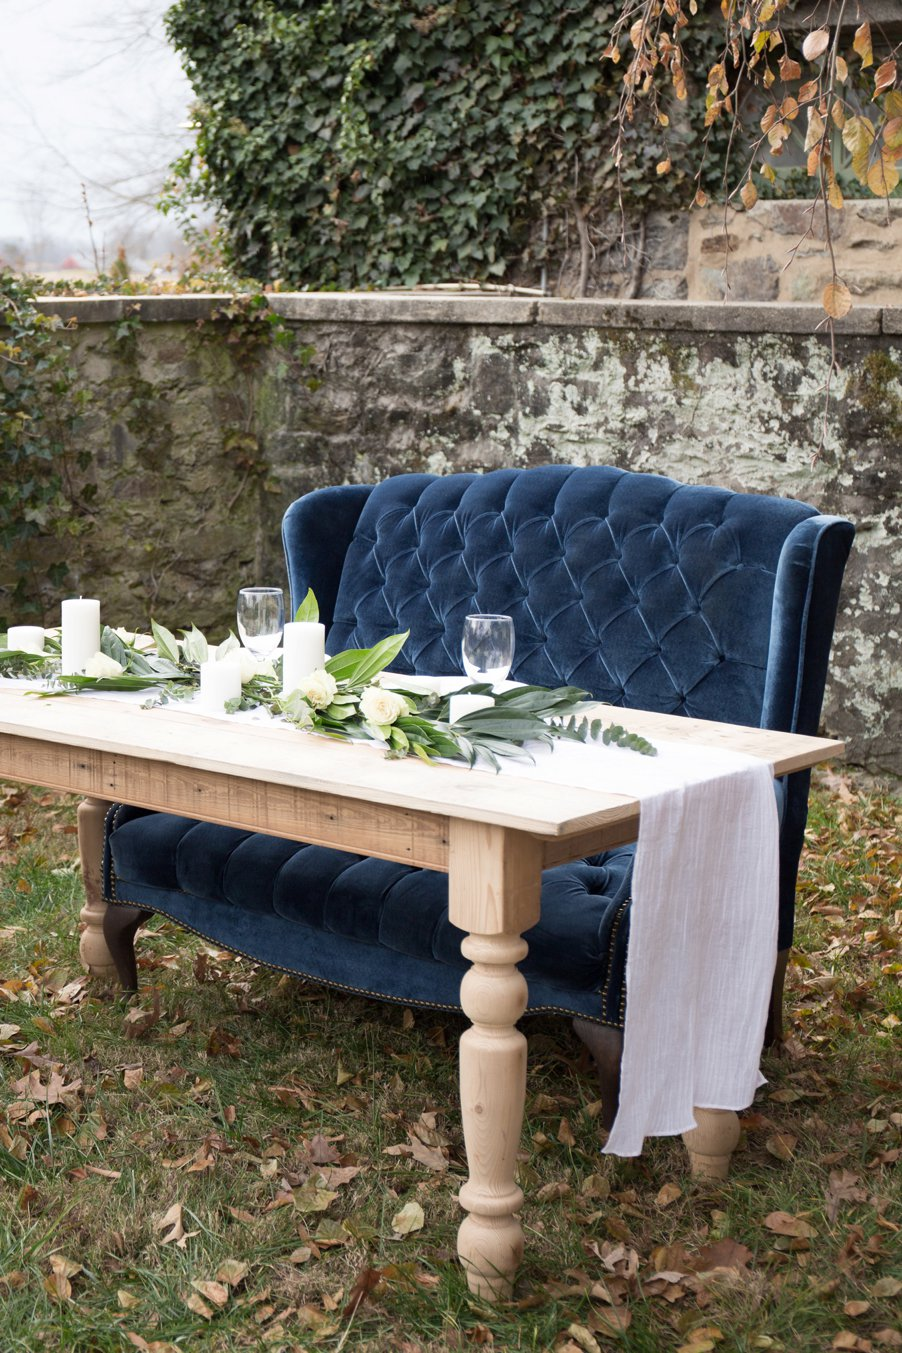 Navy-colored vintage settee sitting behind farm table